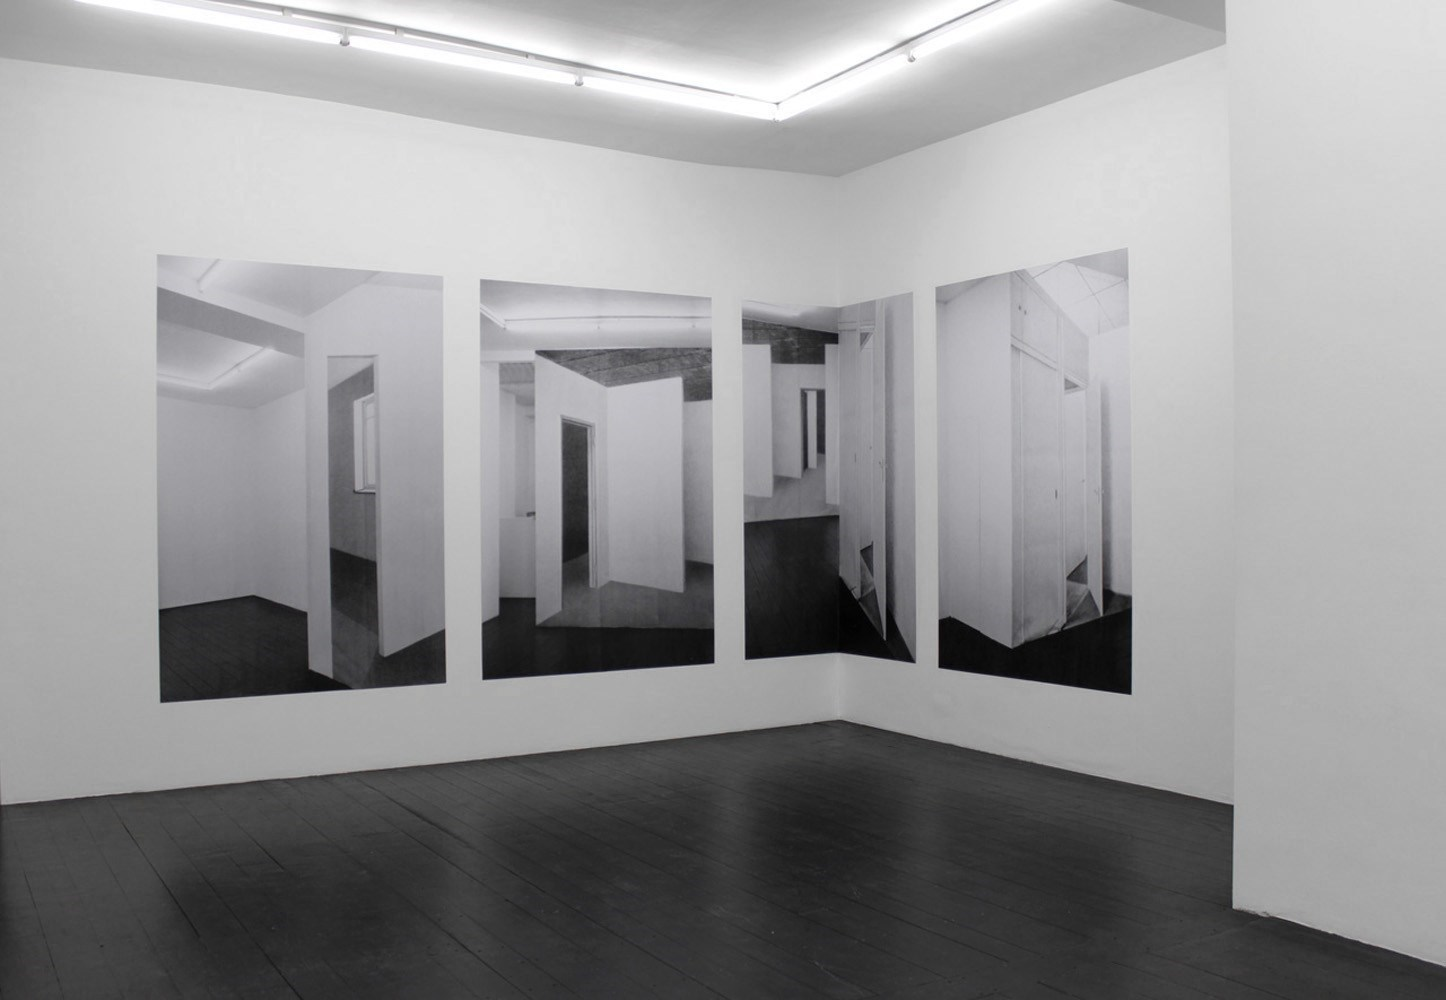 Rohbaucollage II, 4 x 210cm x 140cm, black & white prints, 2011<br />Installation view Carl Freedman Gallery, London